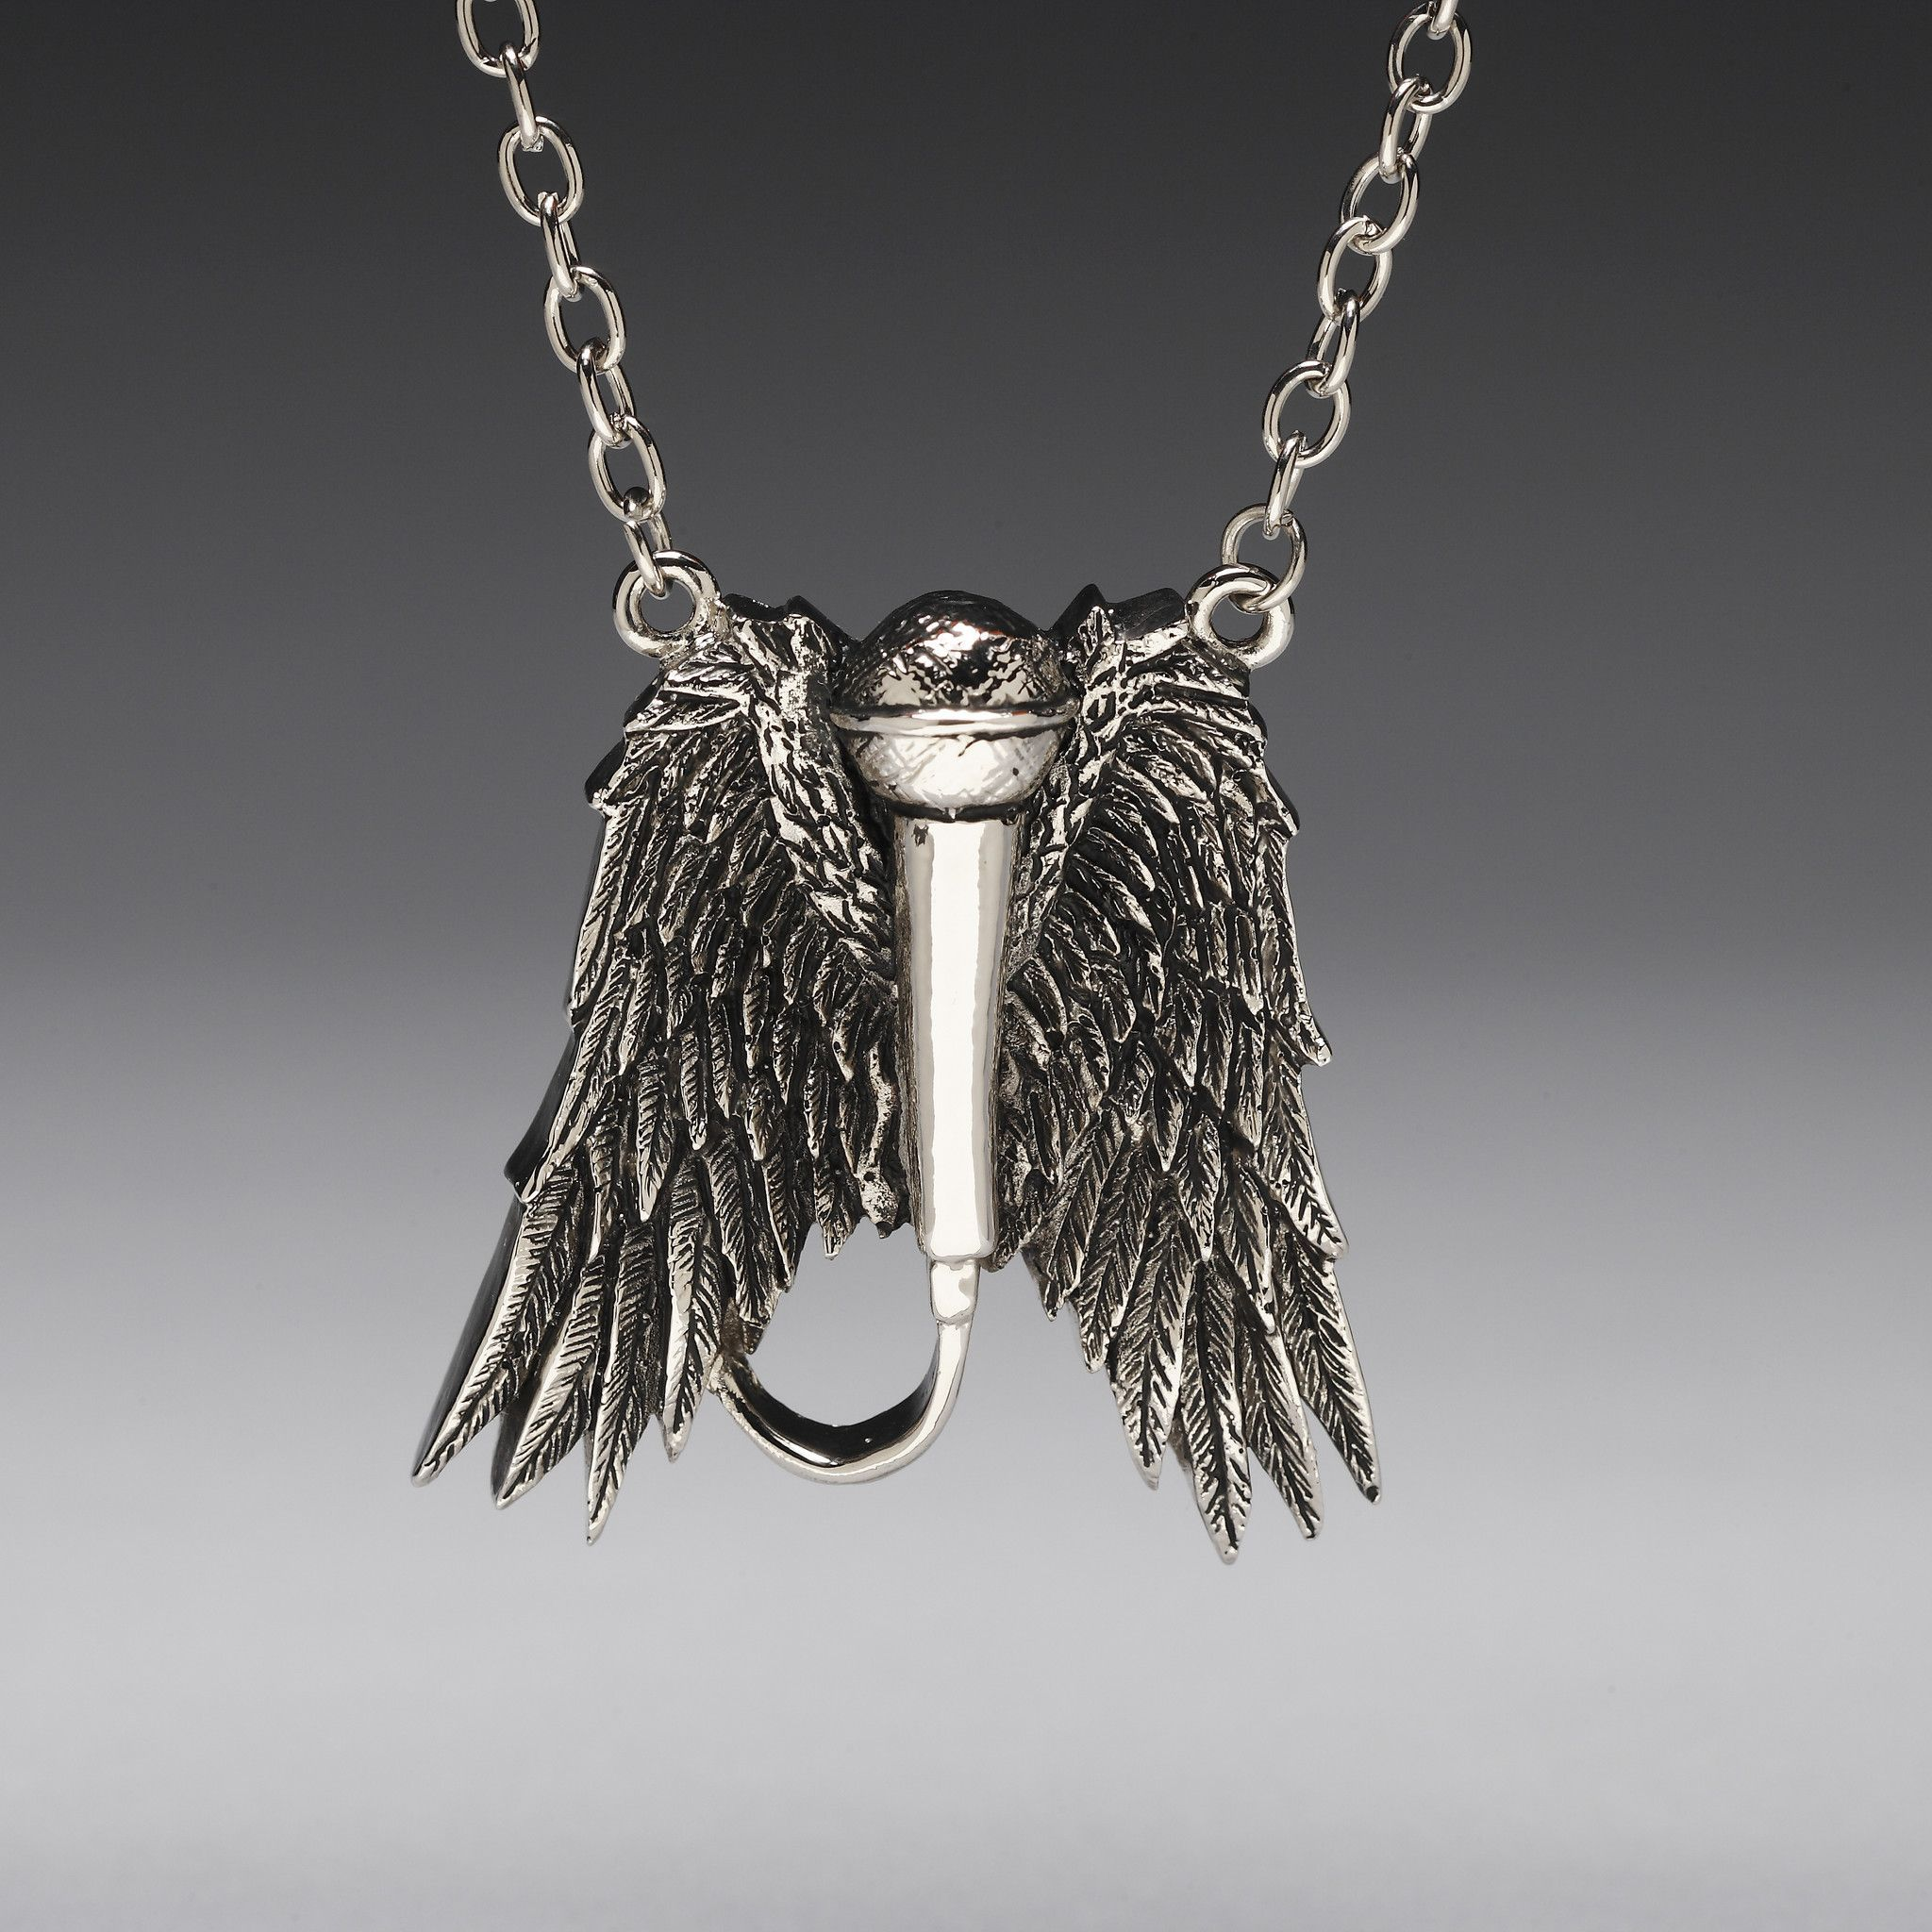 The Rock N' Roll Angel Pendant has very fine details with a semi-tarnished finish, and is featured on a larger-linked silver chain with a lobster clasp.